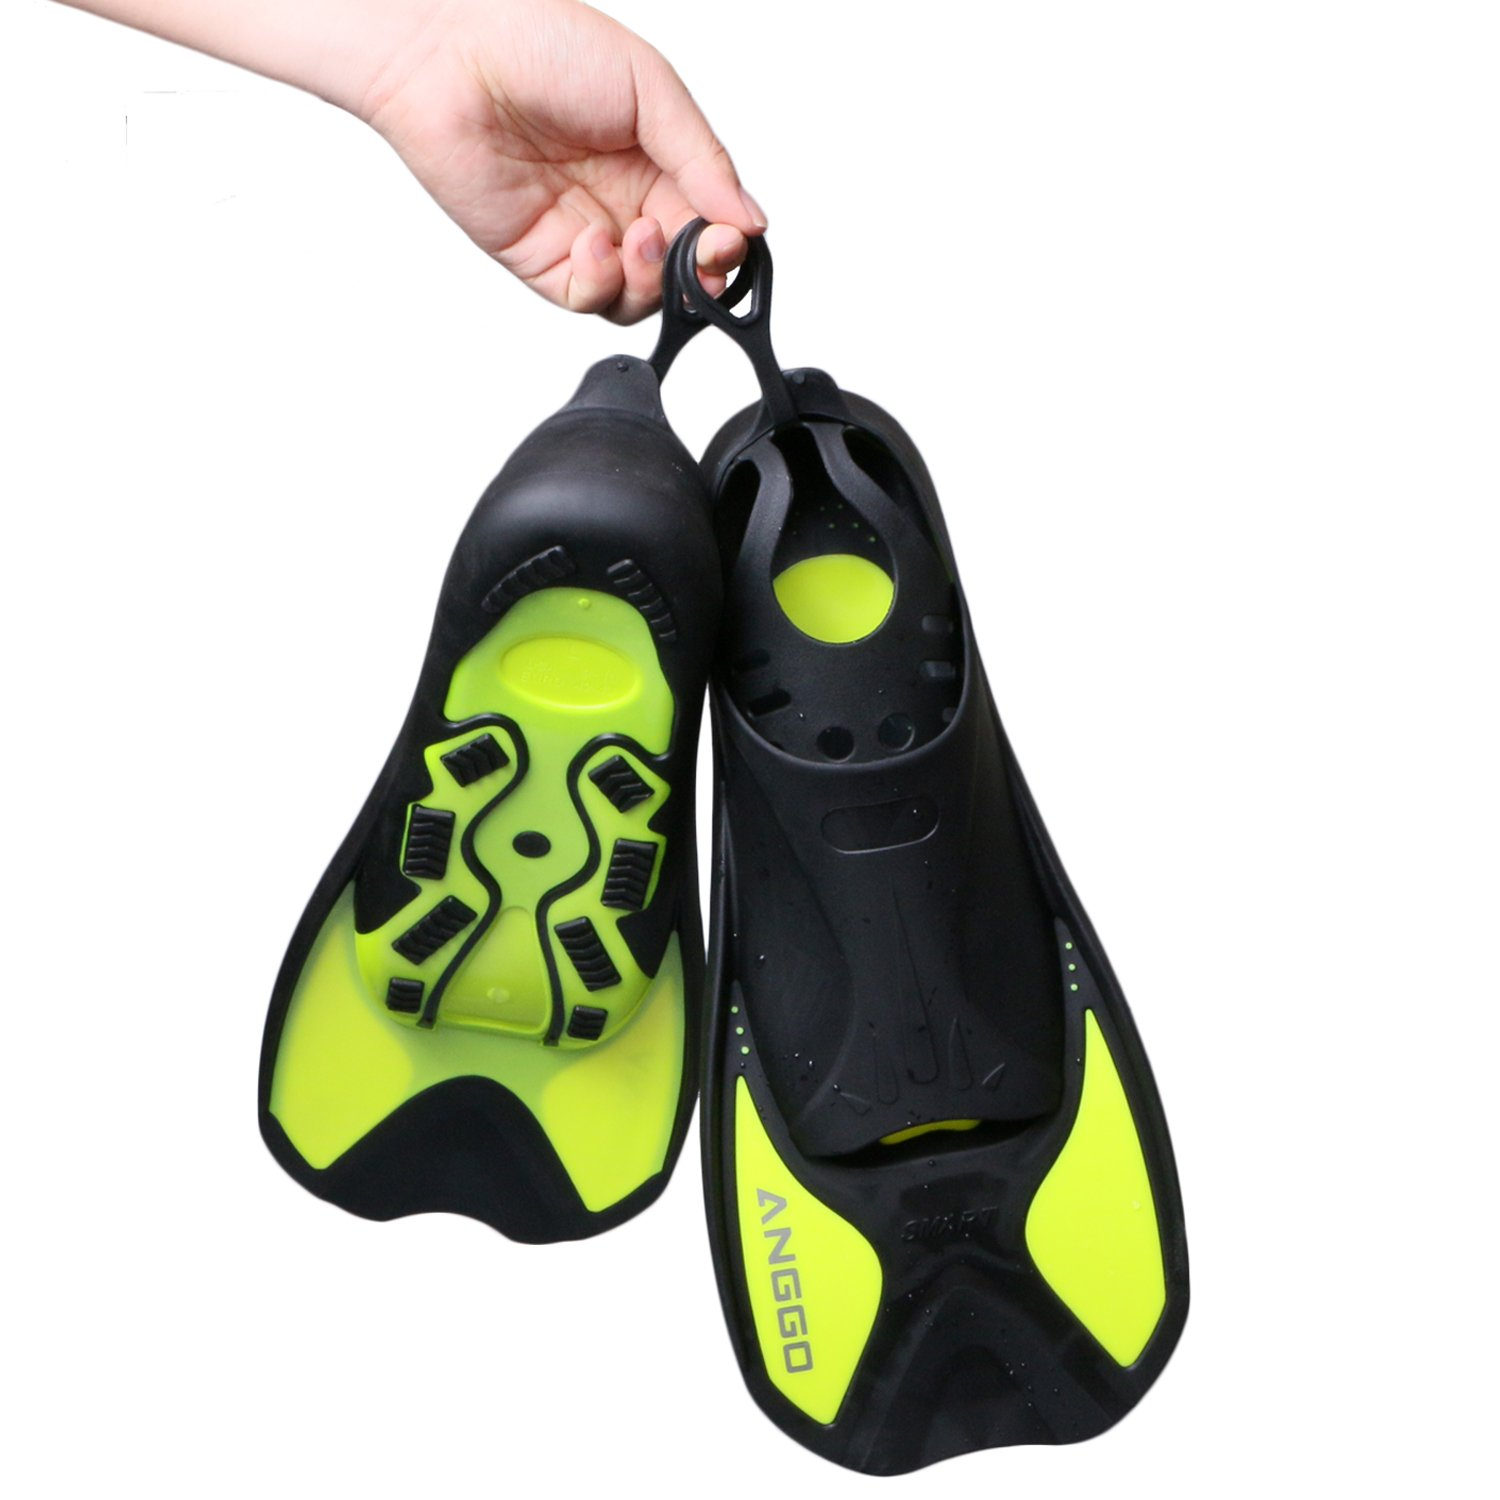 ANGGO Short Dive Fins for Swimming and Snorkeling